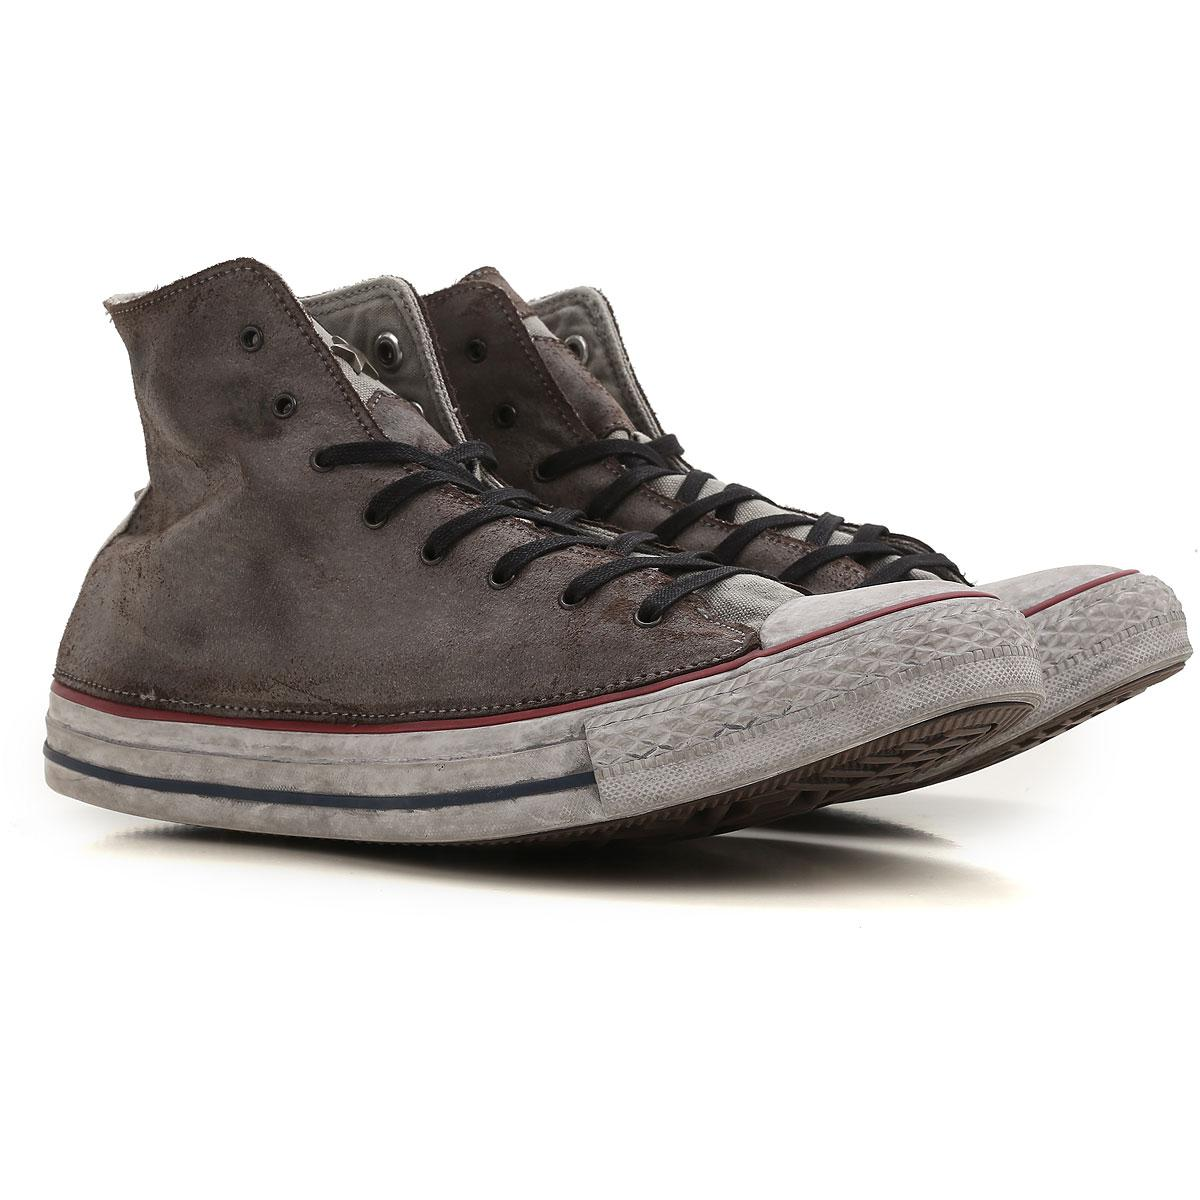 55eaa01b4df315 Lyst - Converse Shoes For Men for Men